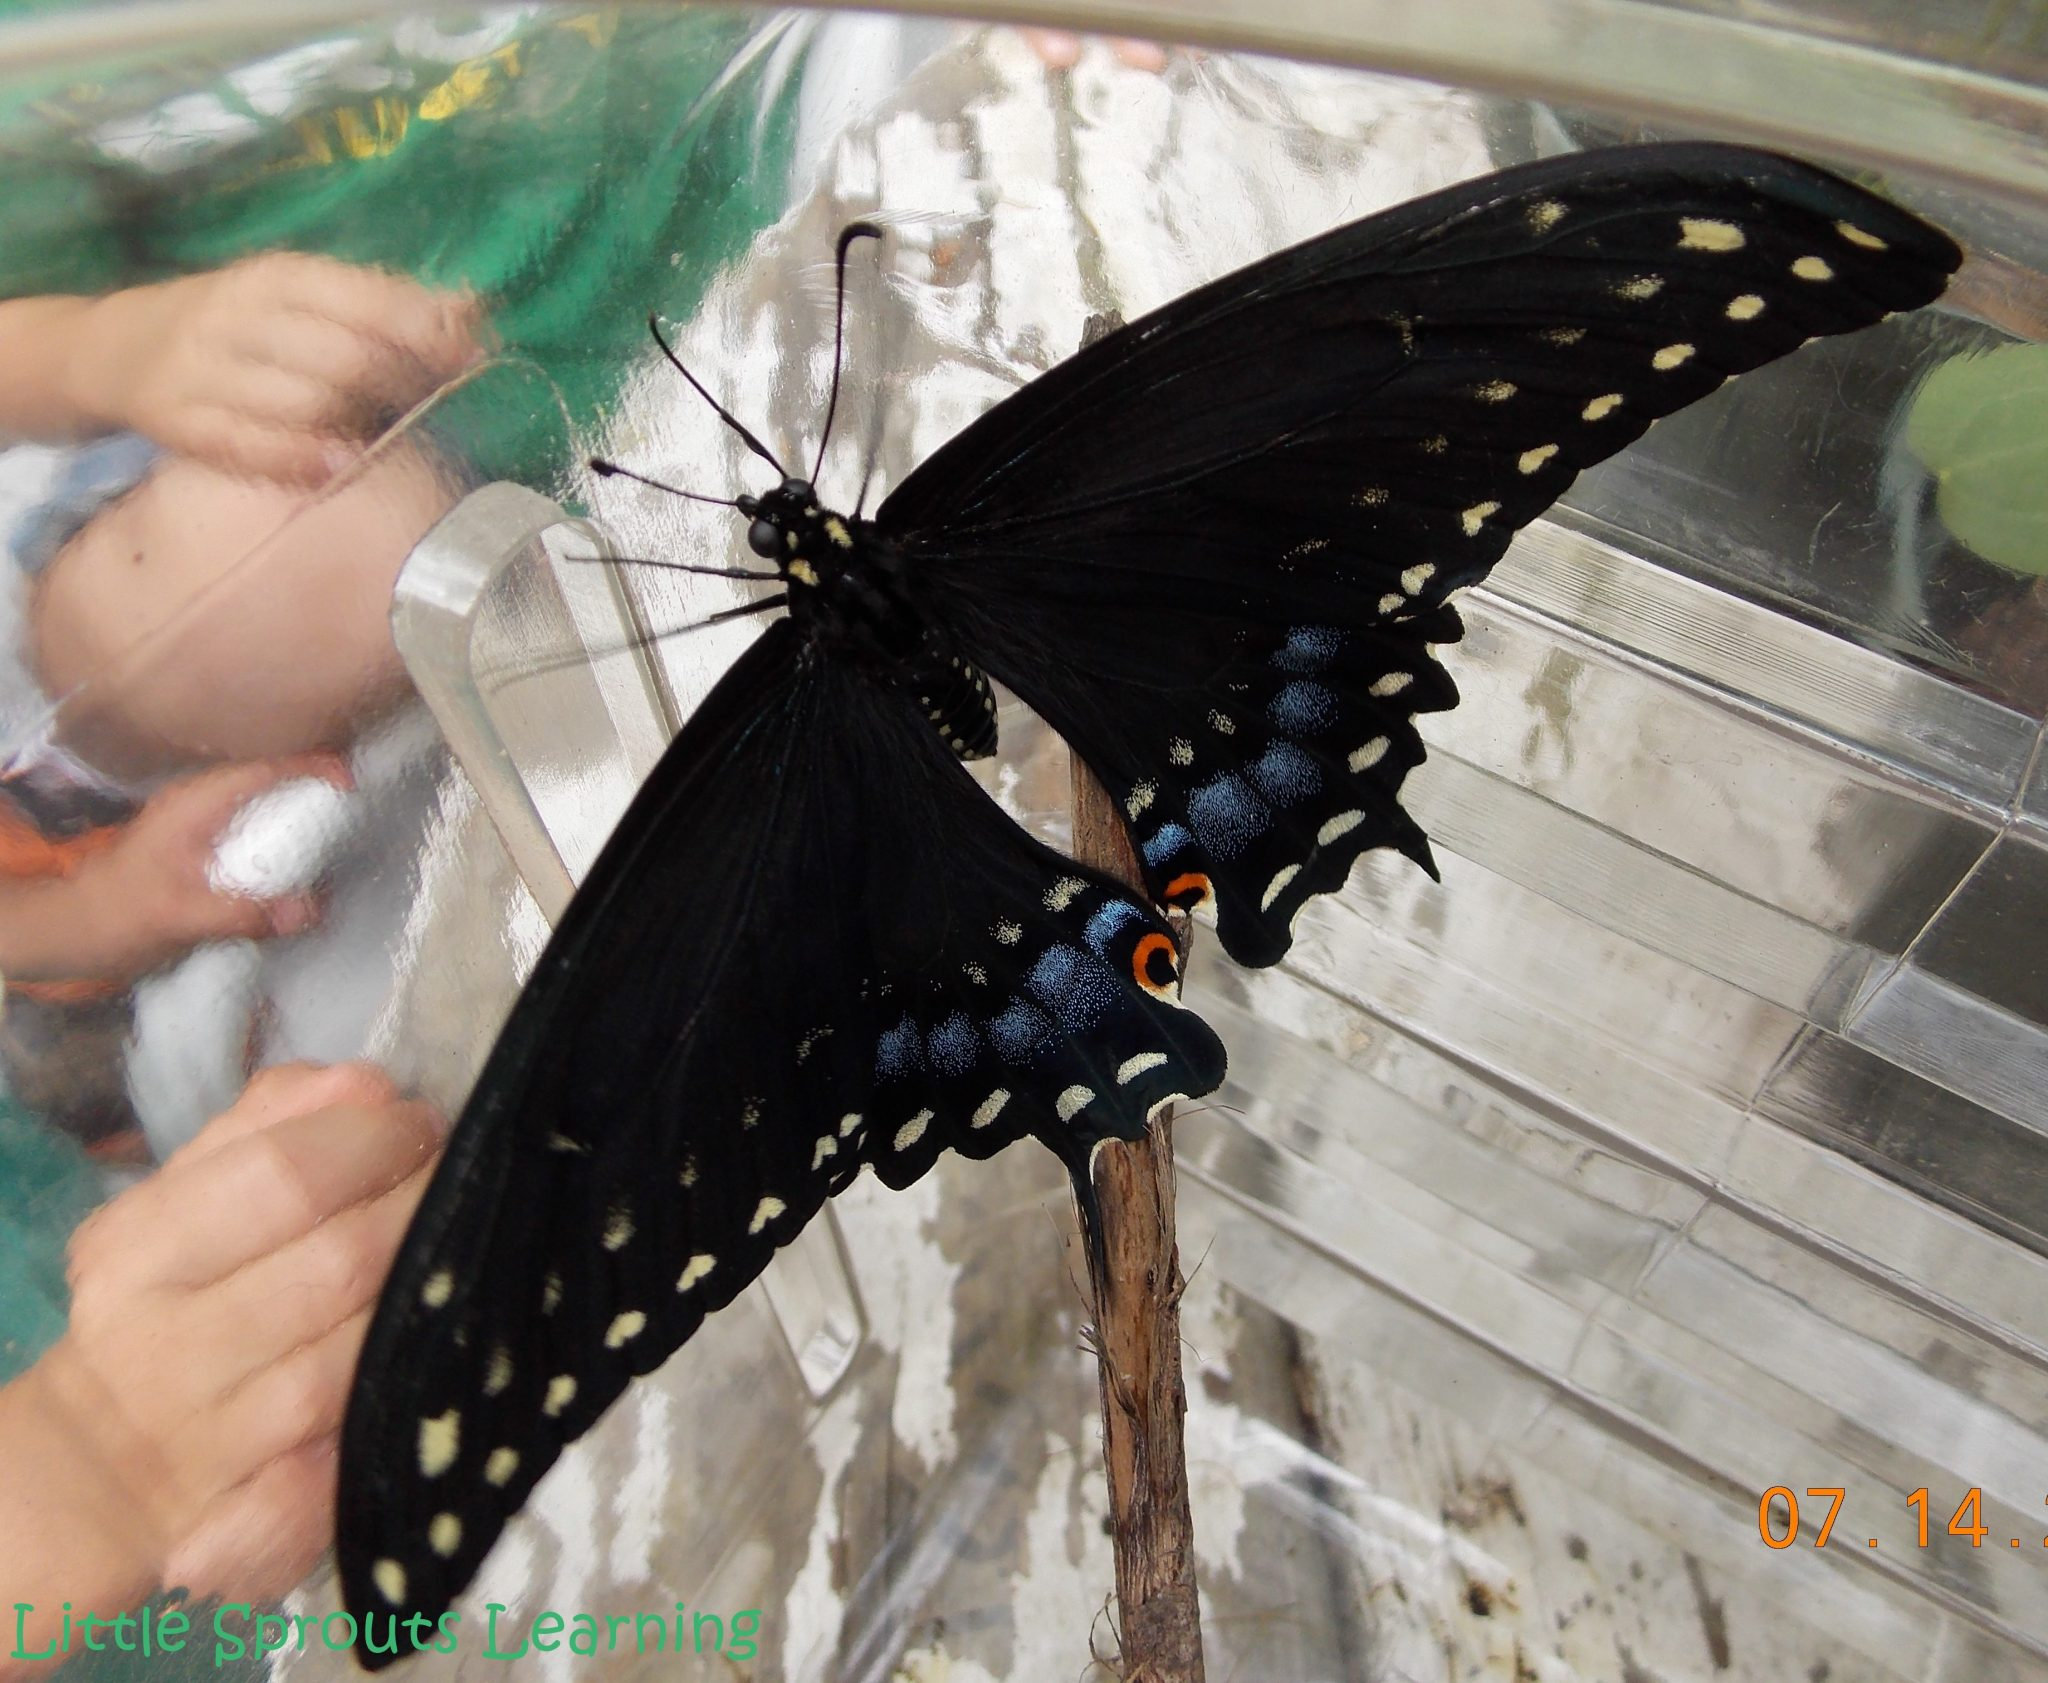 Butterfly Life Cycle Study for Kids, black swallowtail butterfly dried and ready to fly, sitting on a stick in the plastic observation box.